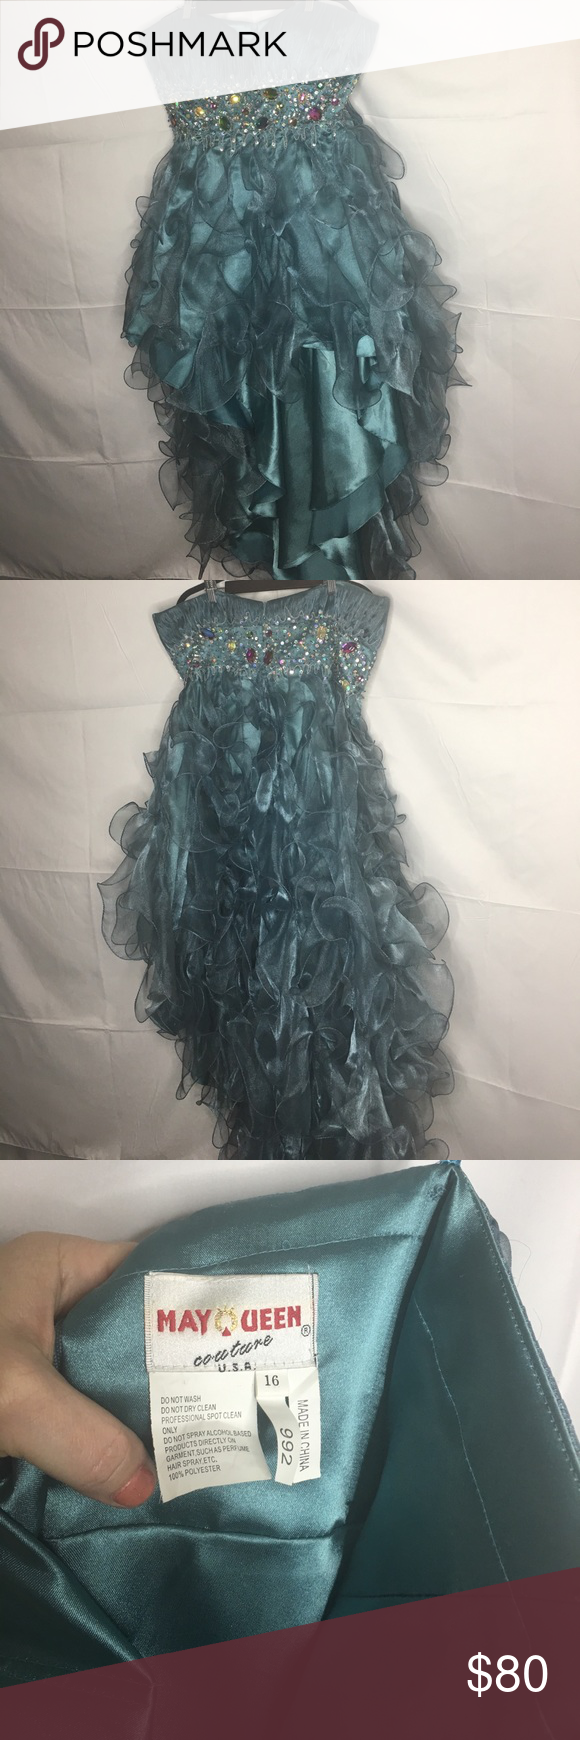 Stunning teal may queen highlow dress queen dress teal and high low